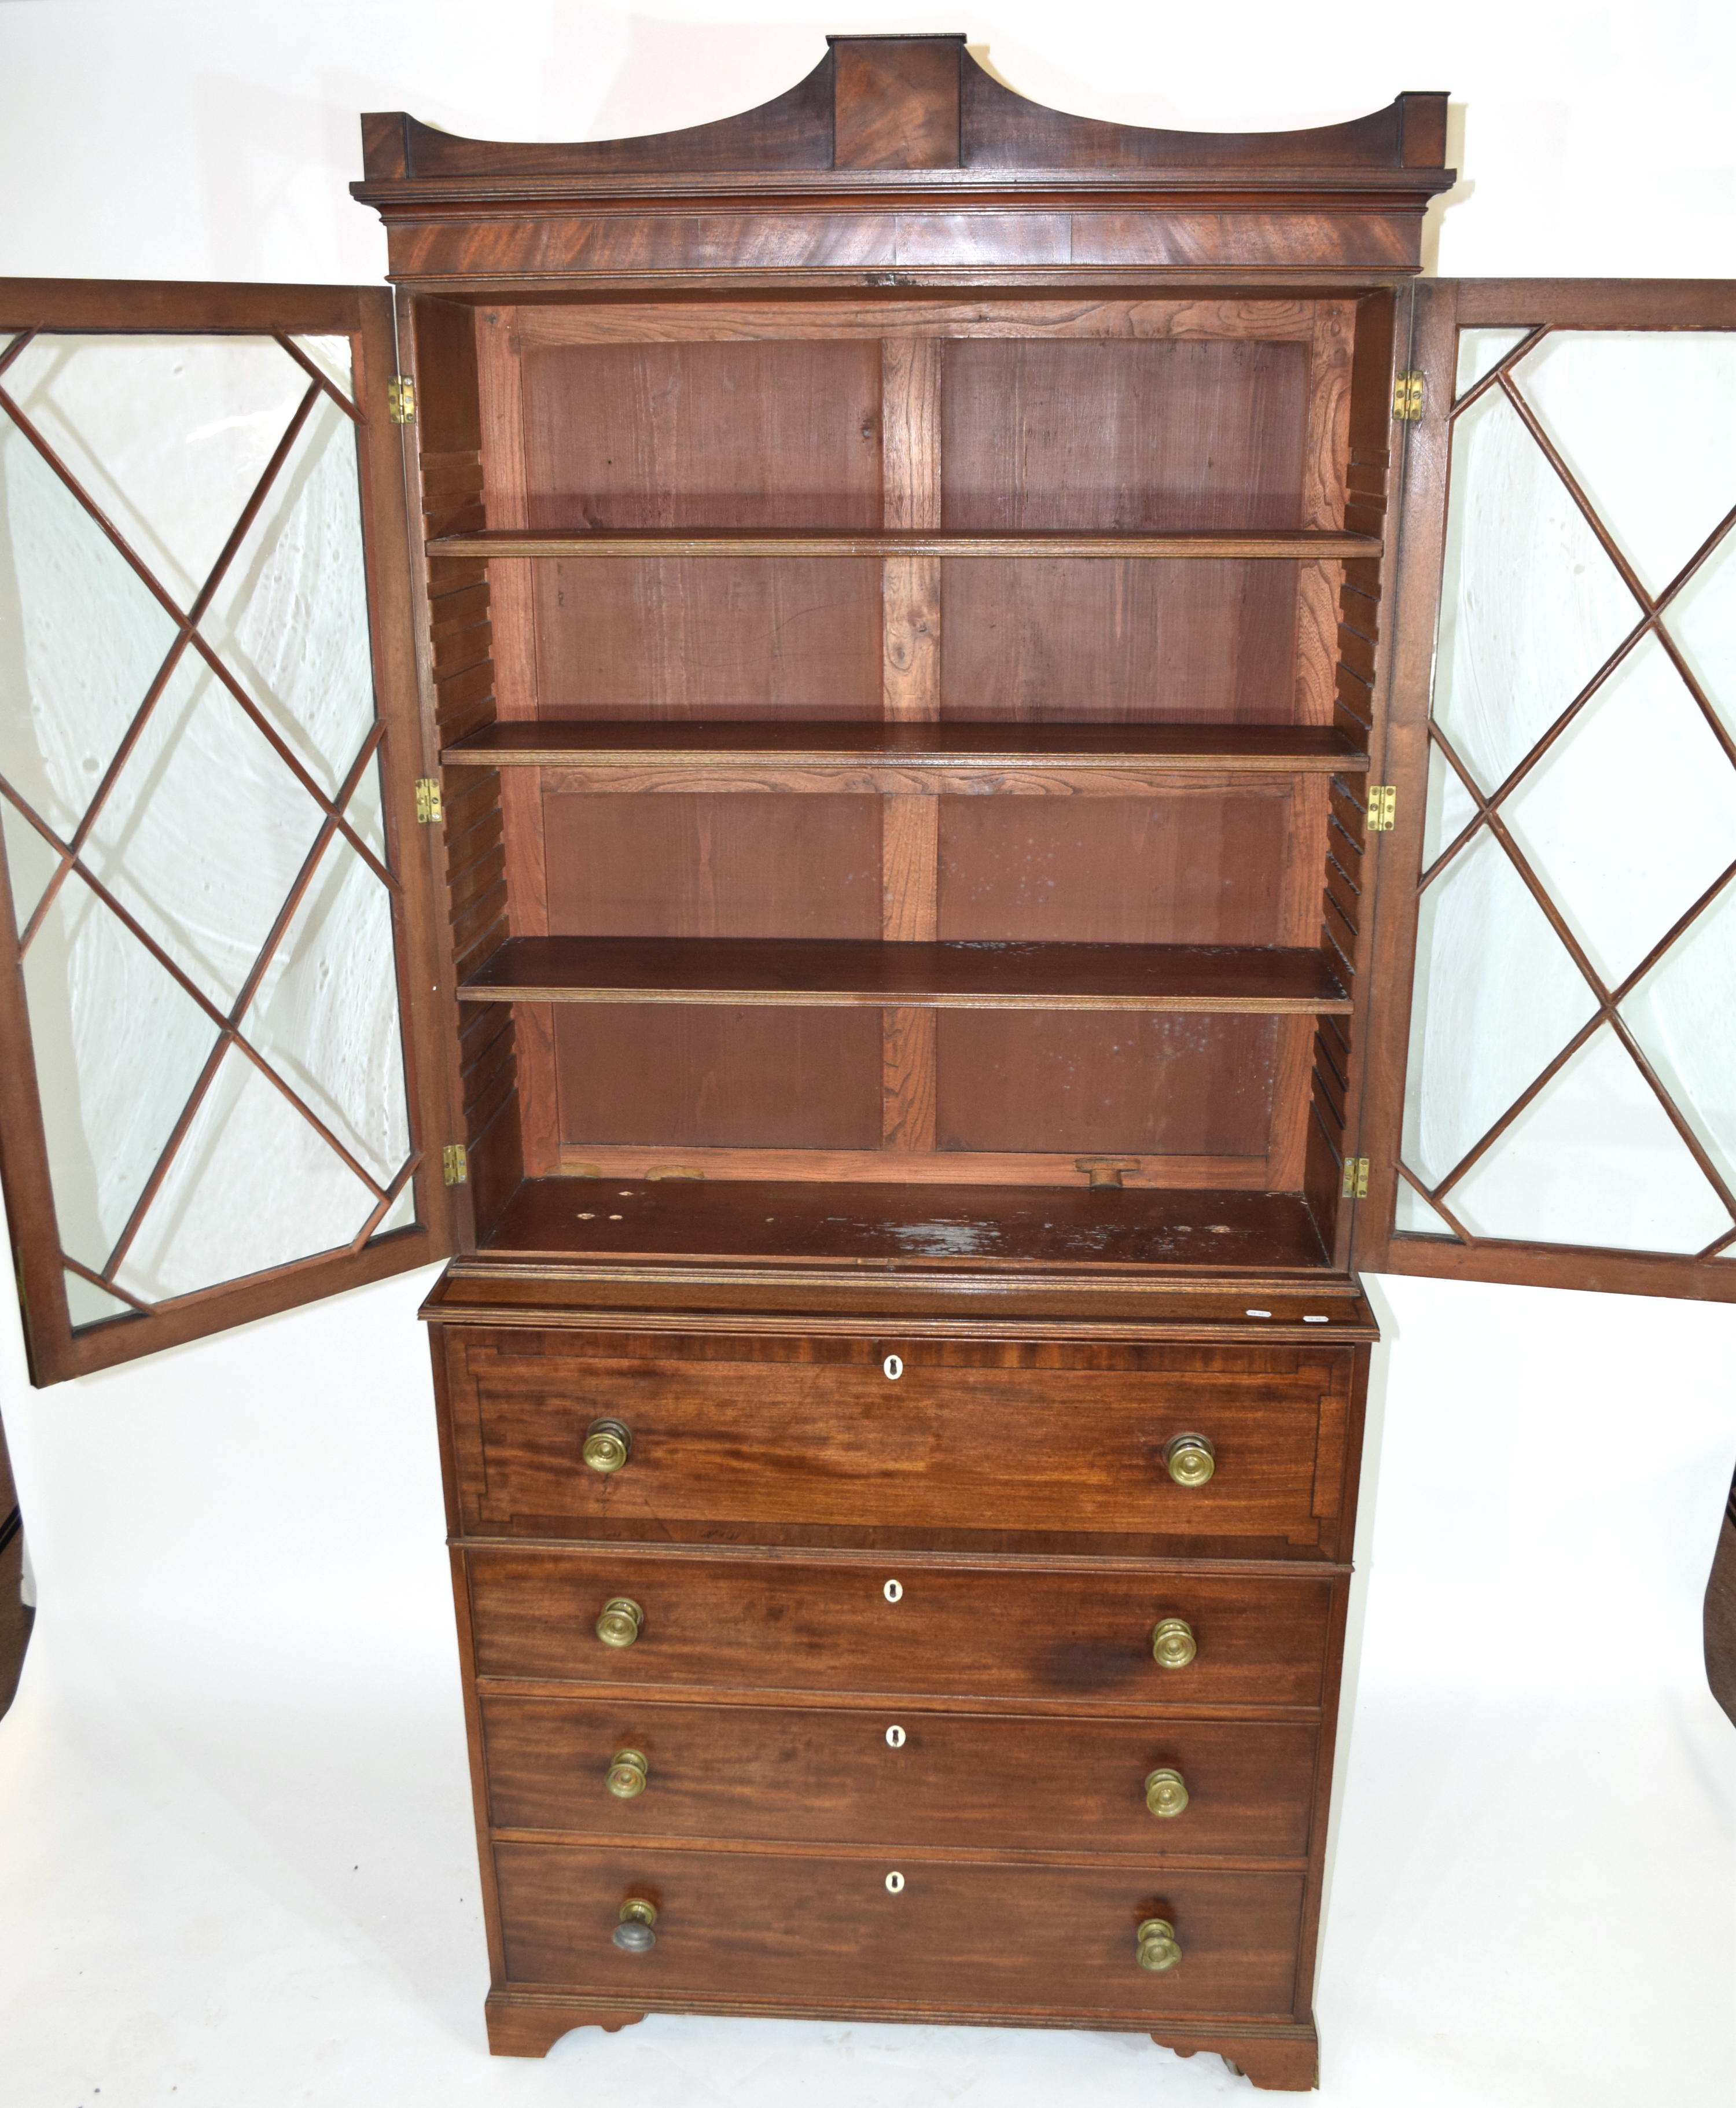 Georgian mahogany secretaire cabinet, top section with a shaped cornice over astragal glazed doors - Image 2 of 6